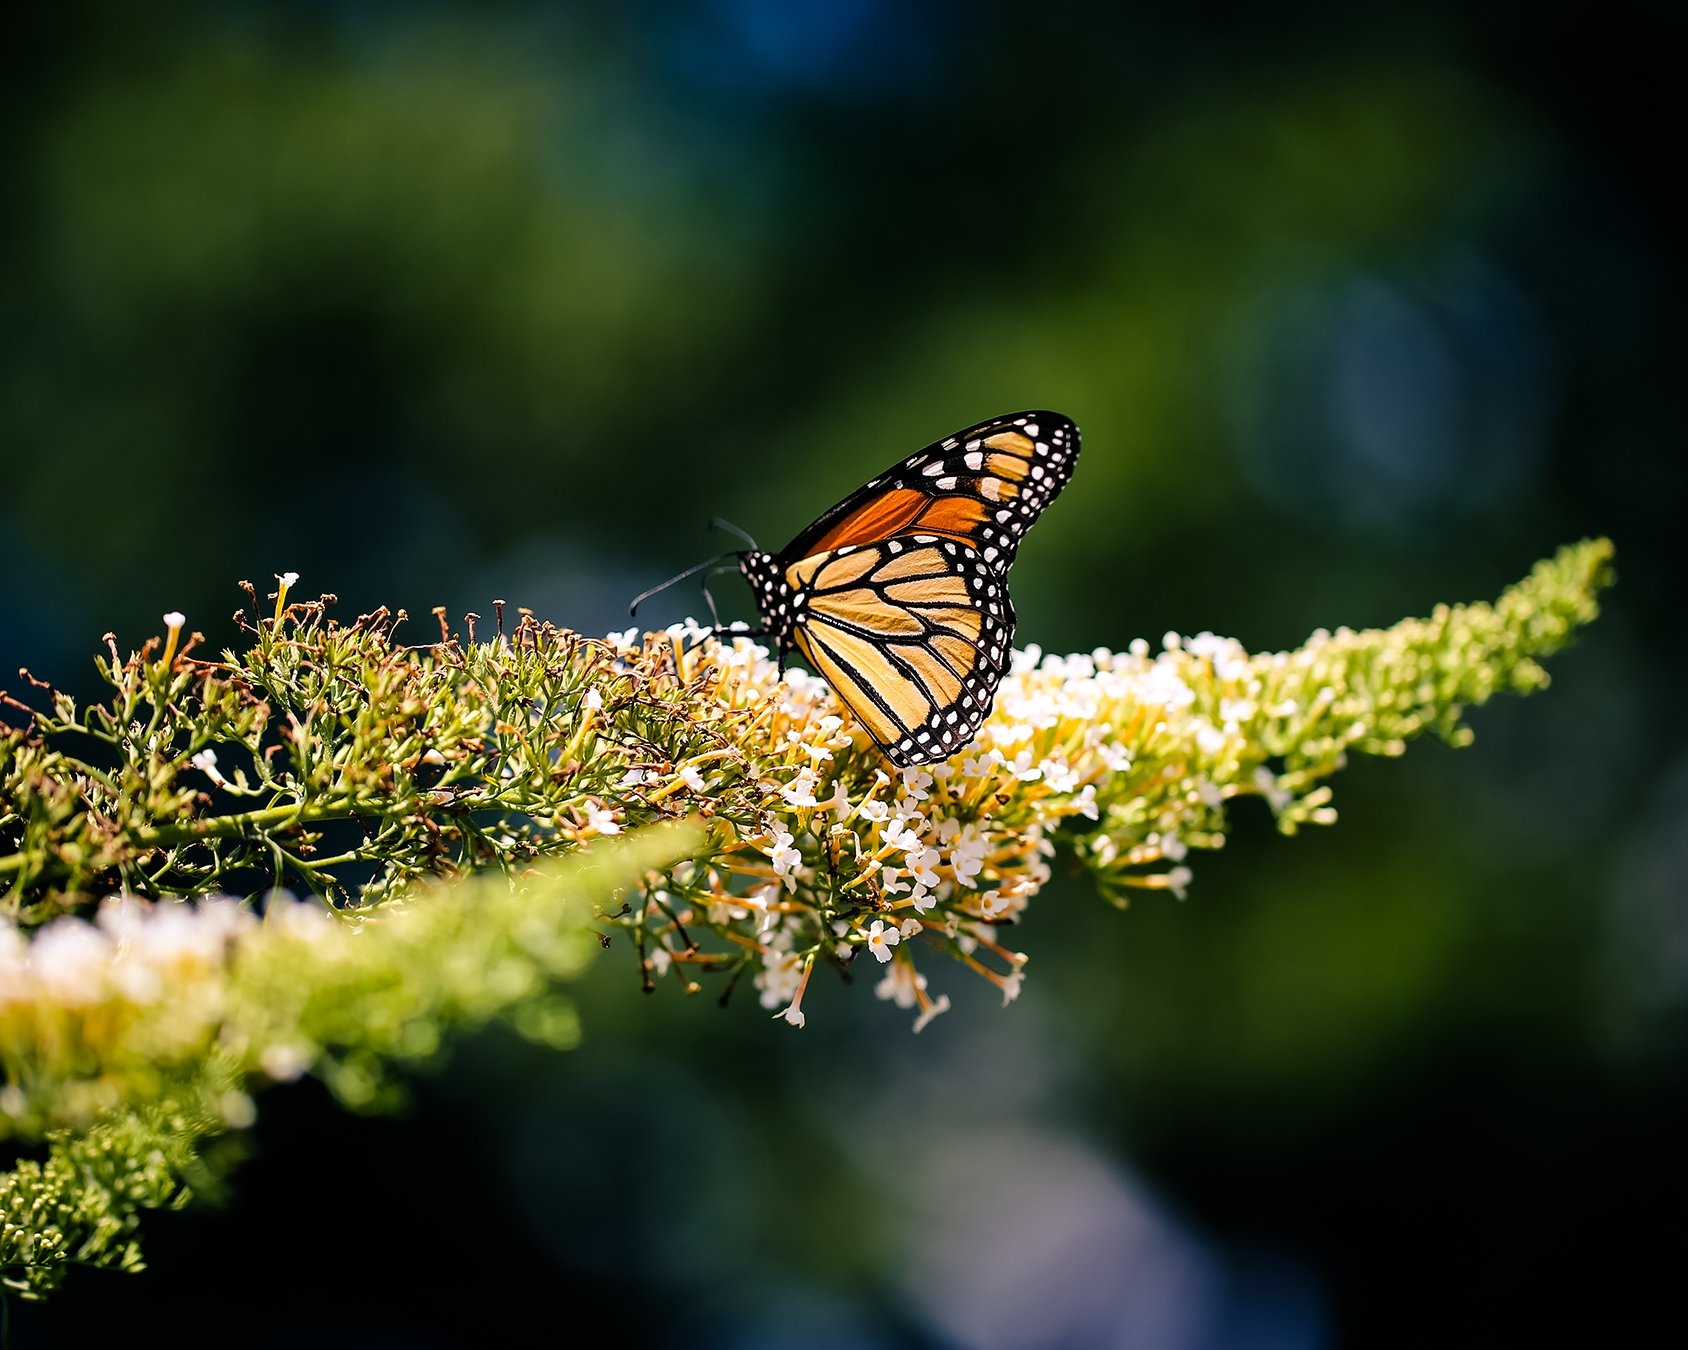 nature-outdoors-butterfly-letsexplore.jpg